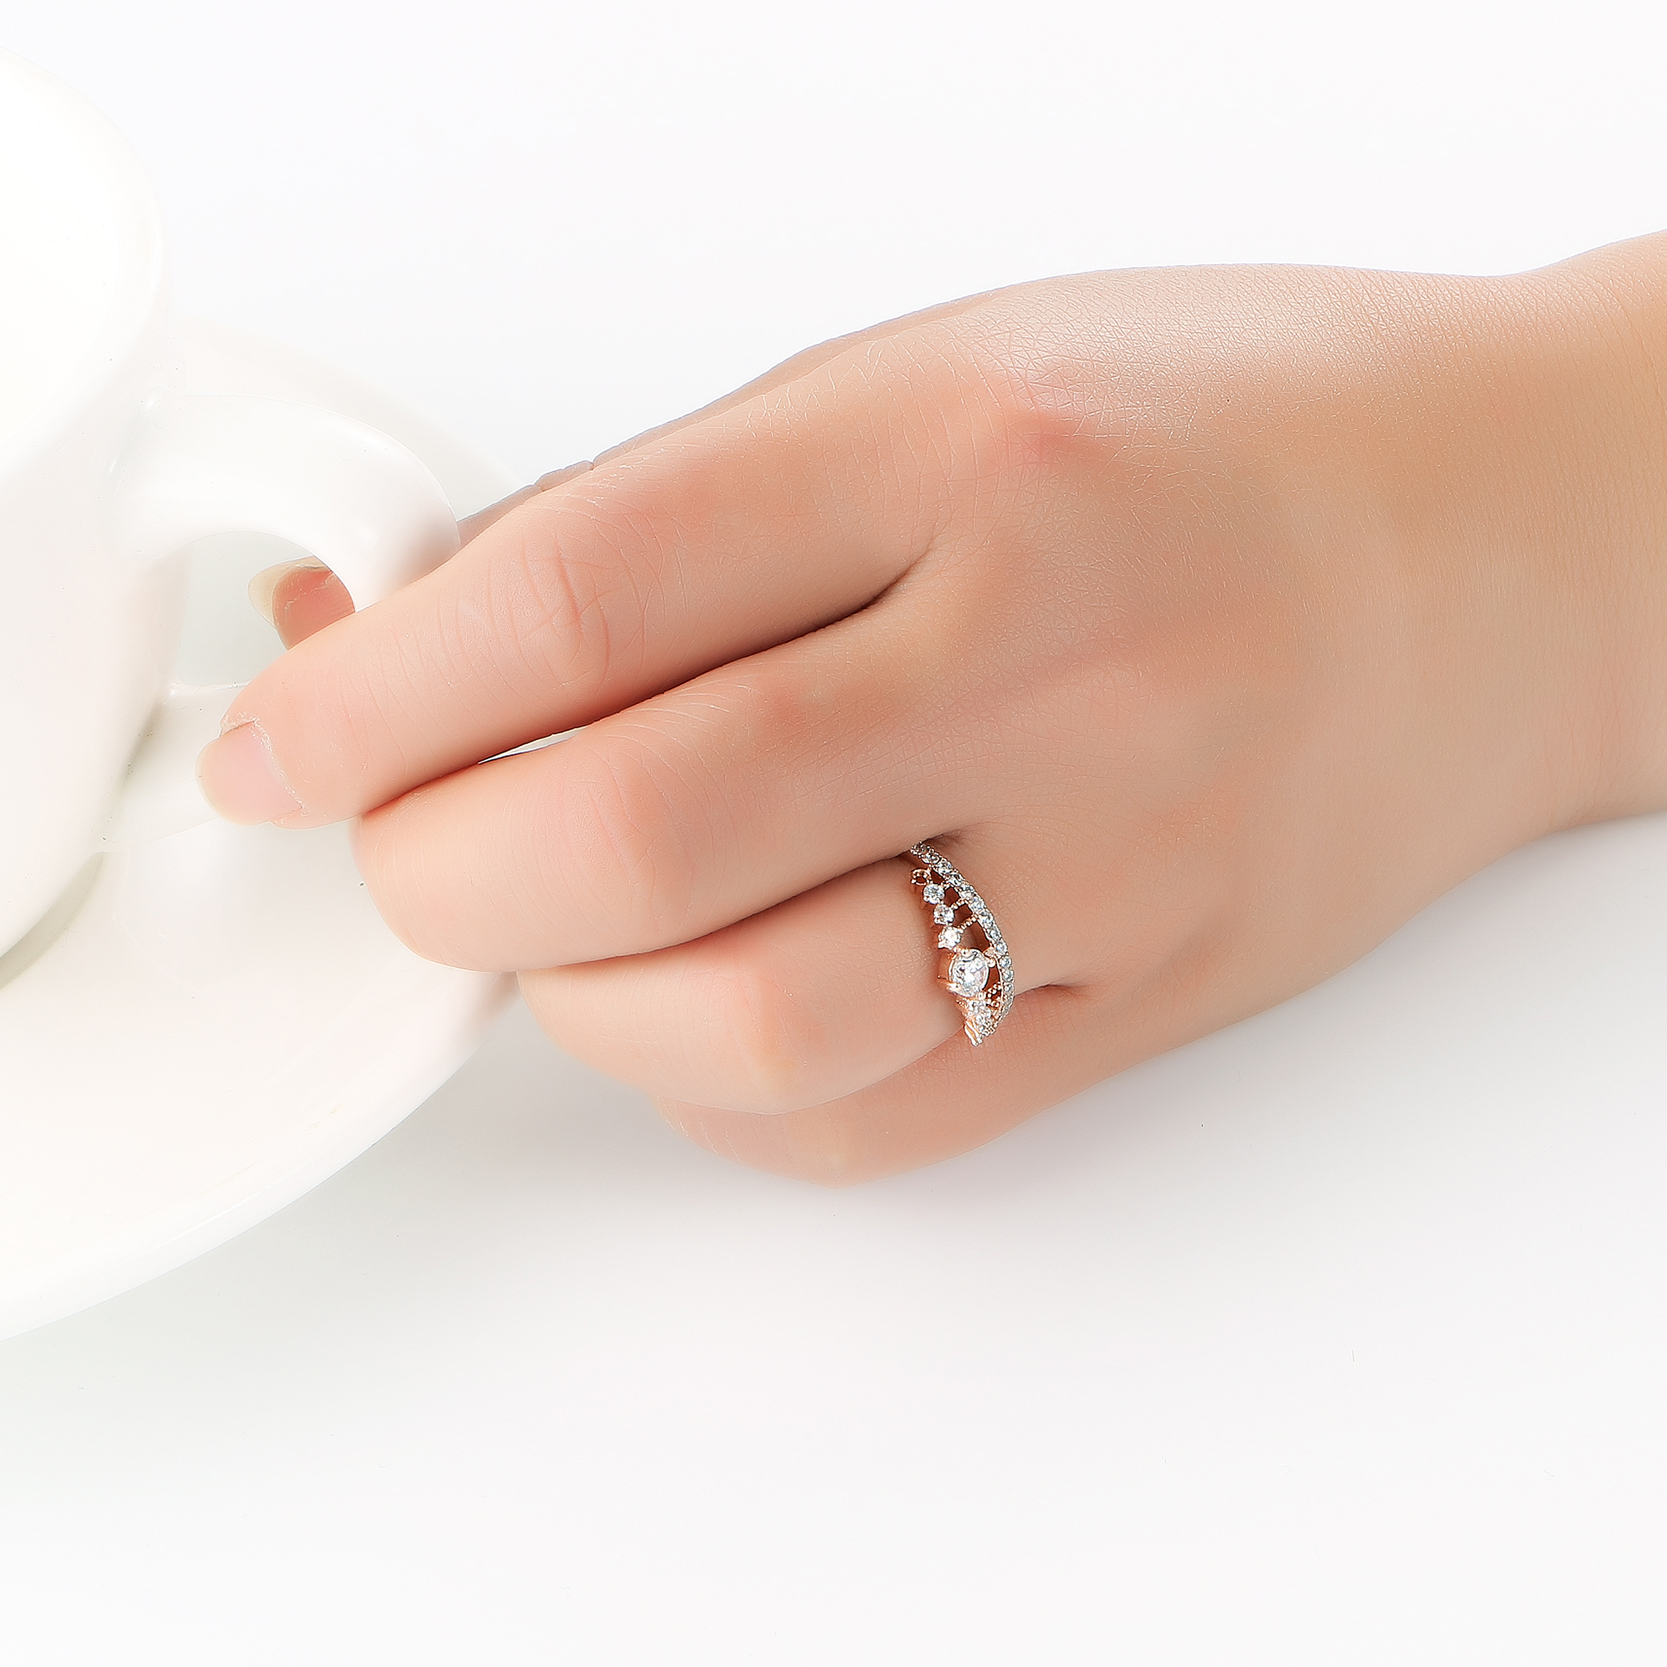 Best Of Womens Wedding Ring On What Hand